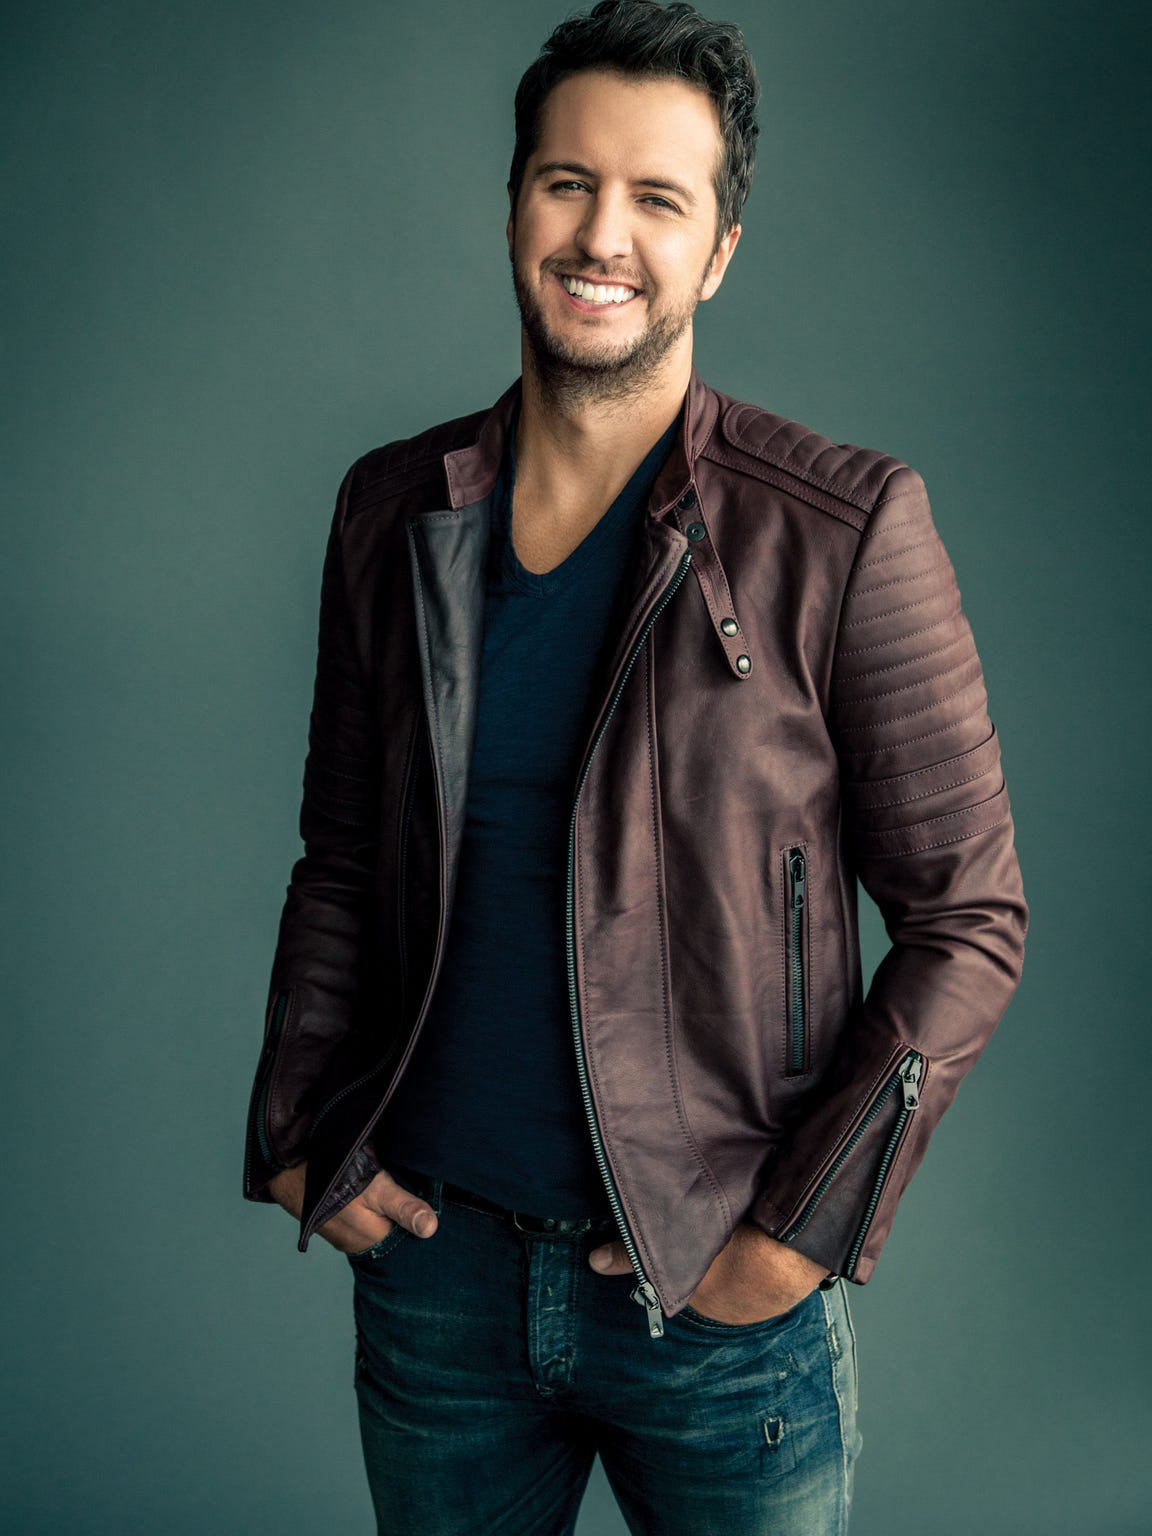 Luke Bryan brings his 2016 Kill the Lights Tour to